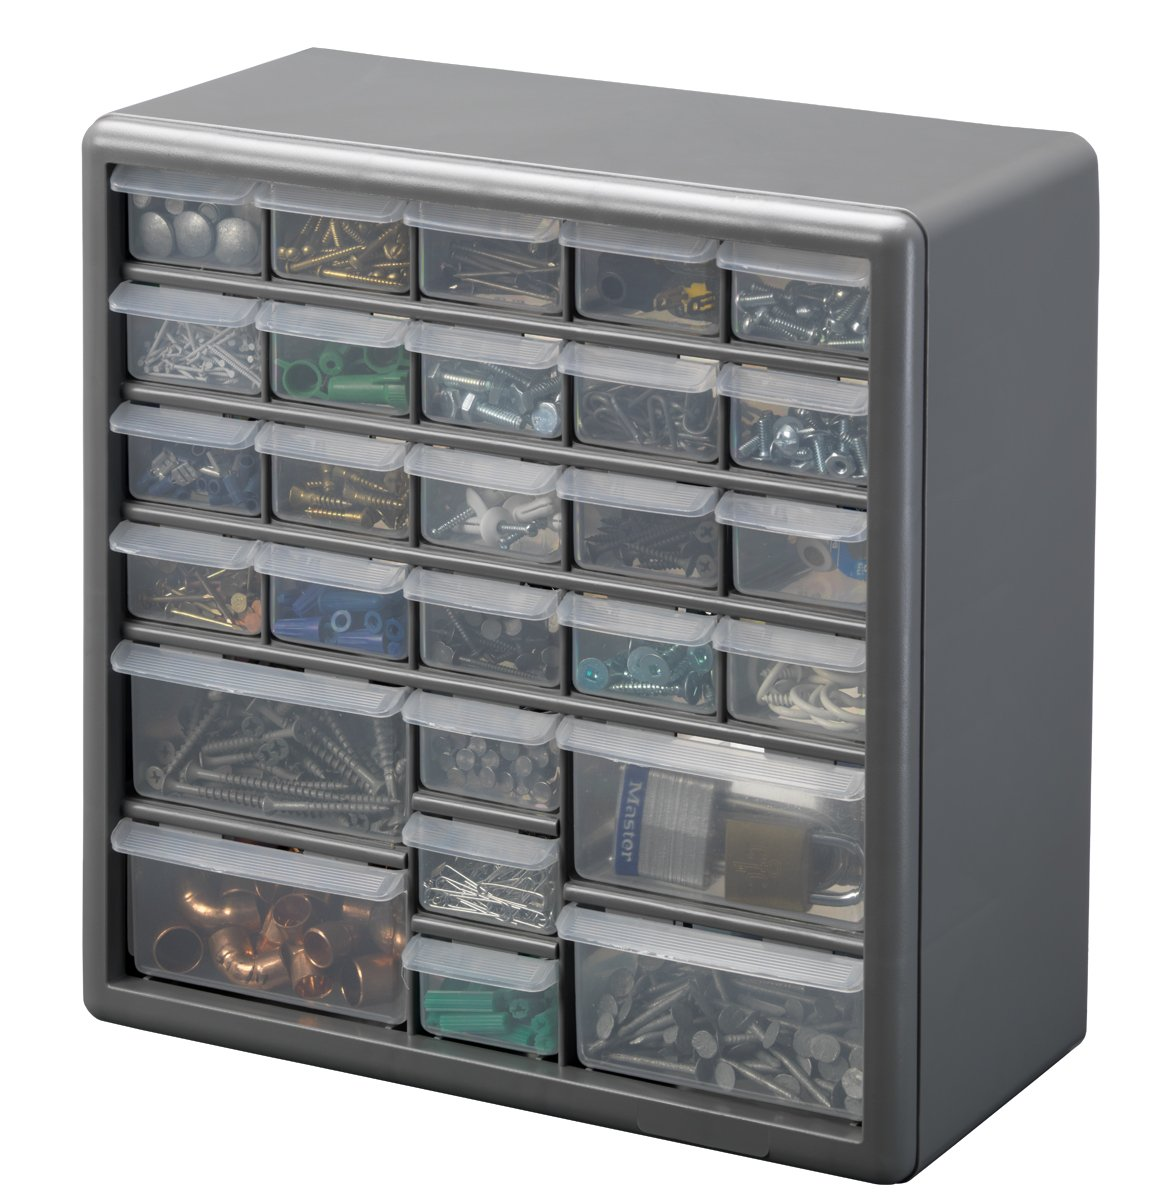 Amazon.com: Stack-On DS-60 60 Drawer Storage Cabinet: Home Improvement